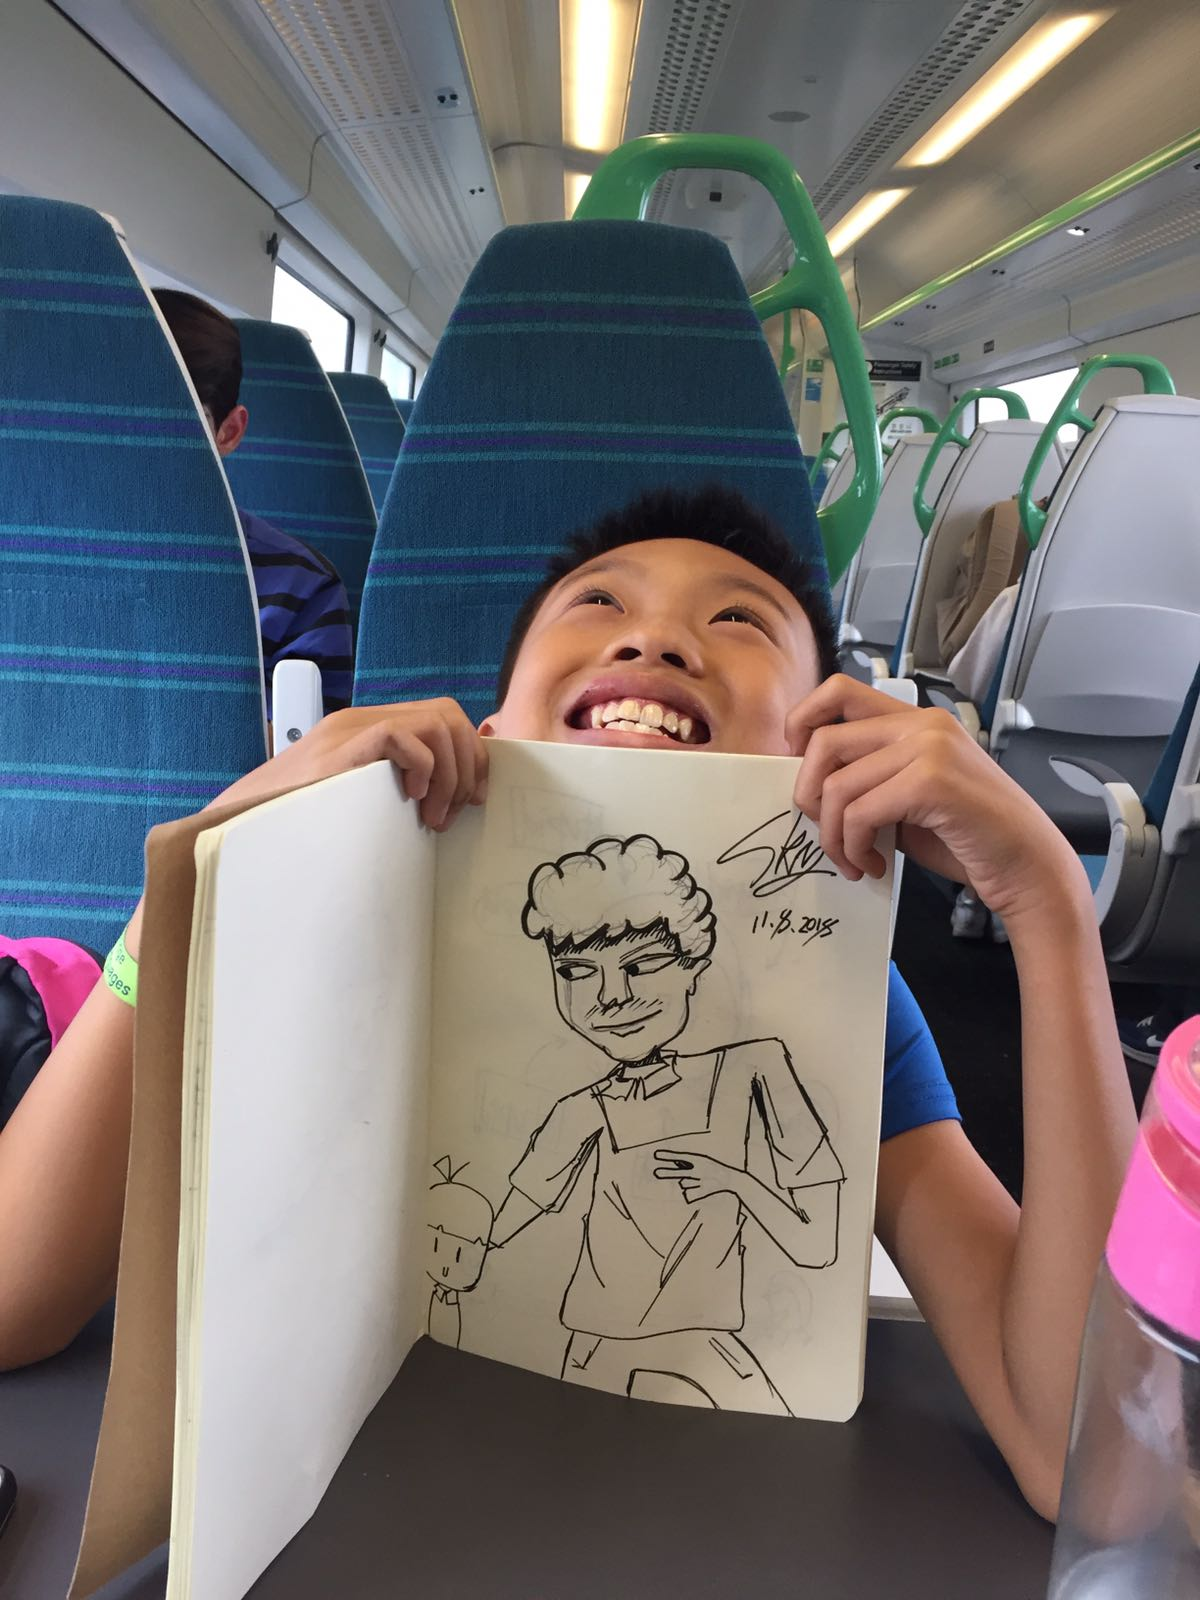 Drawing on train